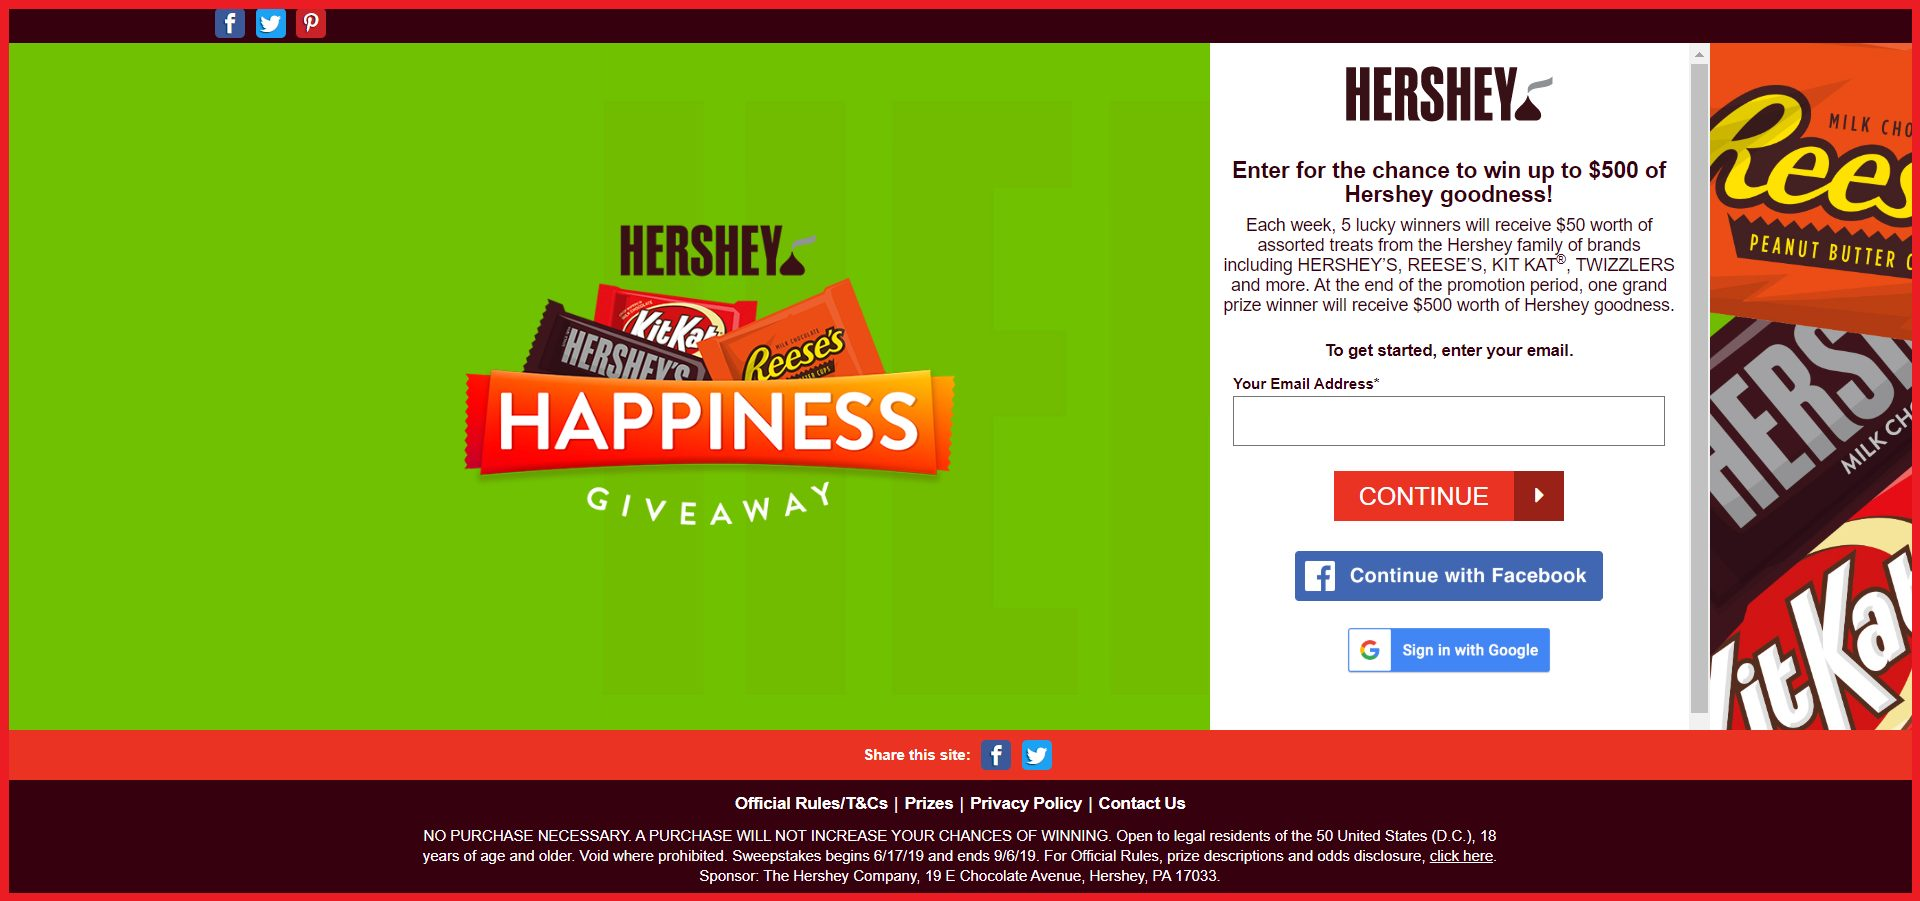 Hershey's Sweepstakes entry guide